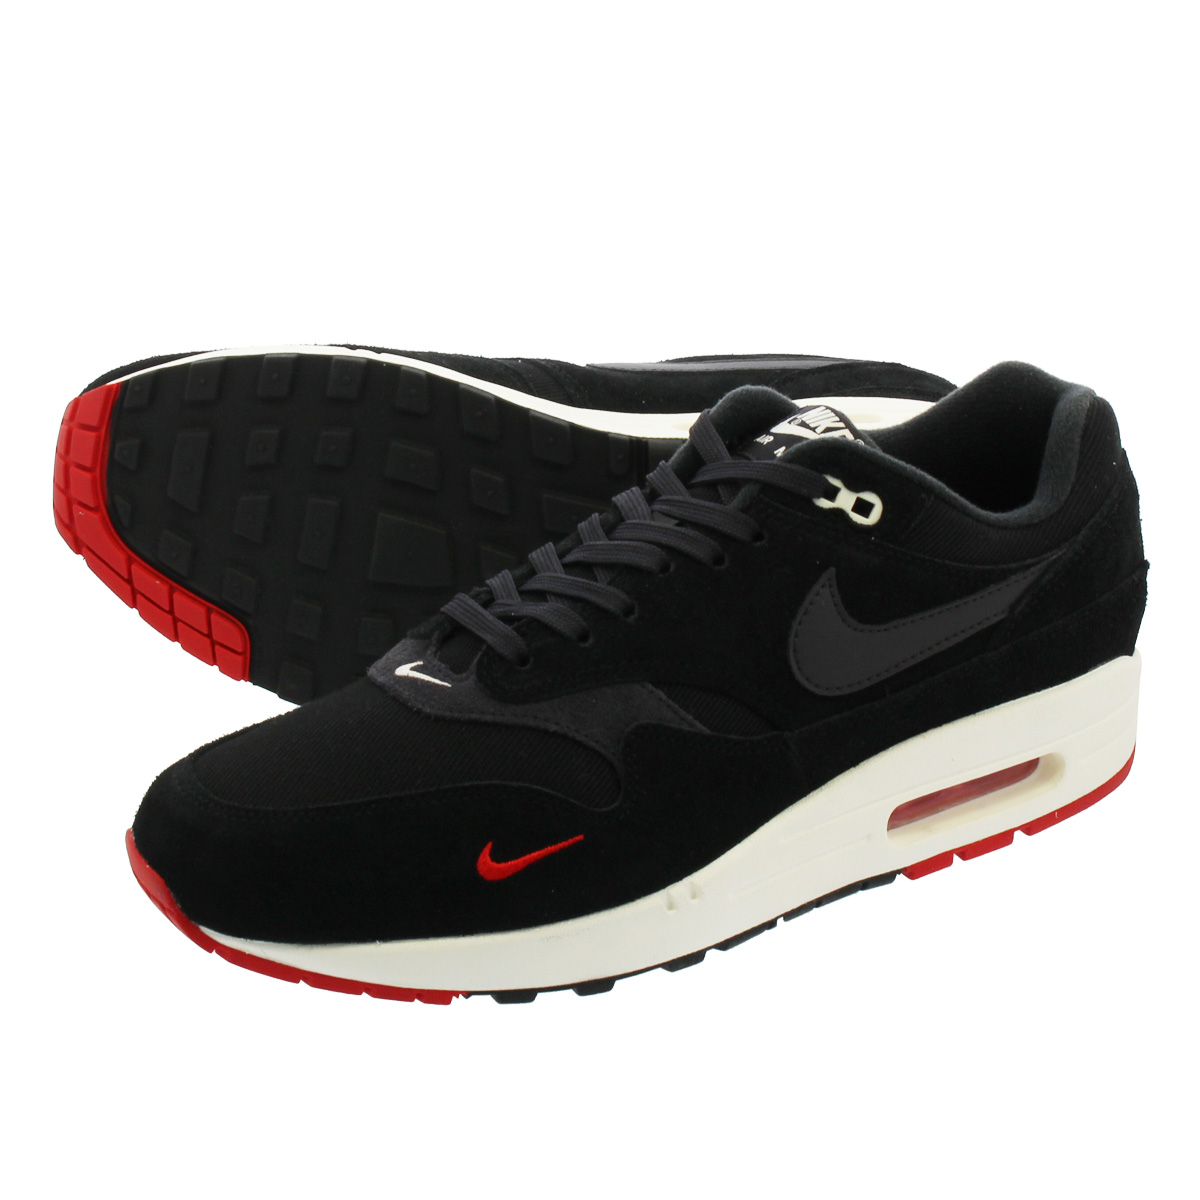 NIKE AIR MAX 1 PREMIUM ナイキ エア マックス 1 プレミアム BLACK/OIL GREY/UNIVERSITY RED/SAIL 875844-007